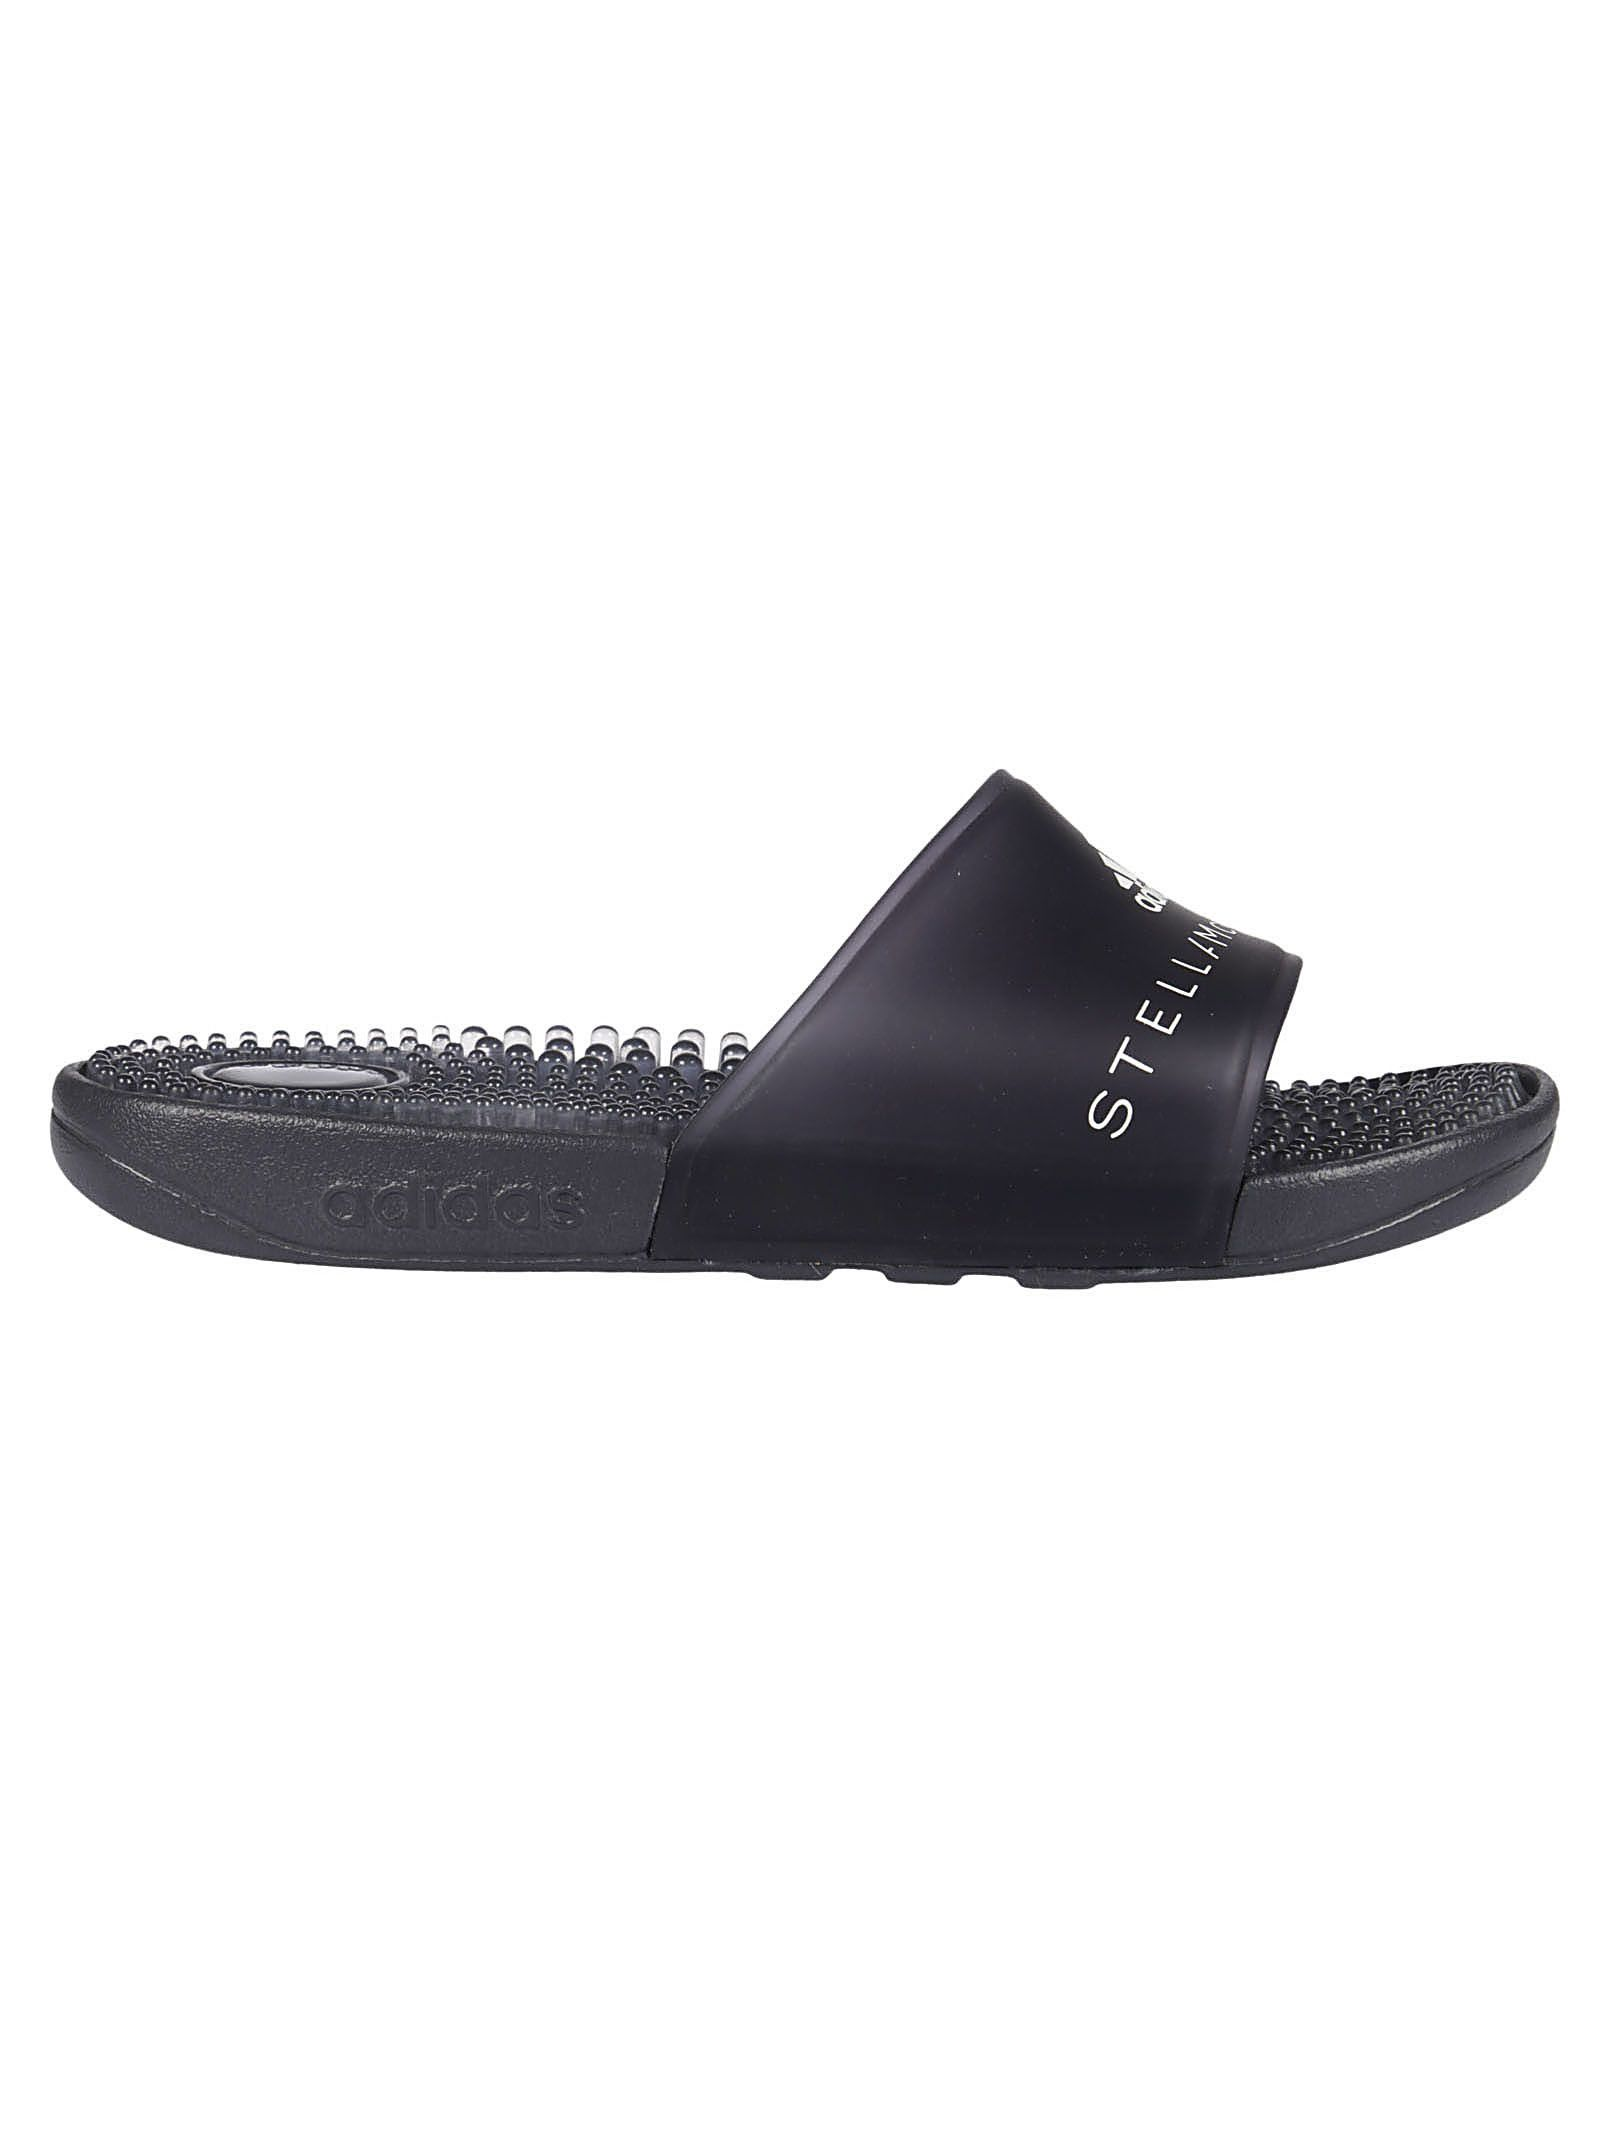 Stella Mccartney Adissage Sliders